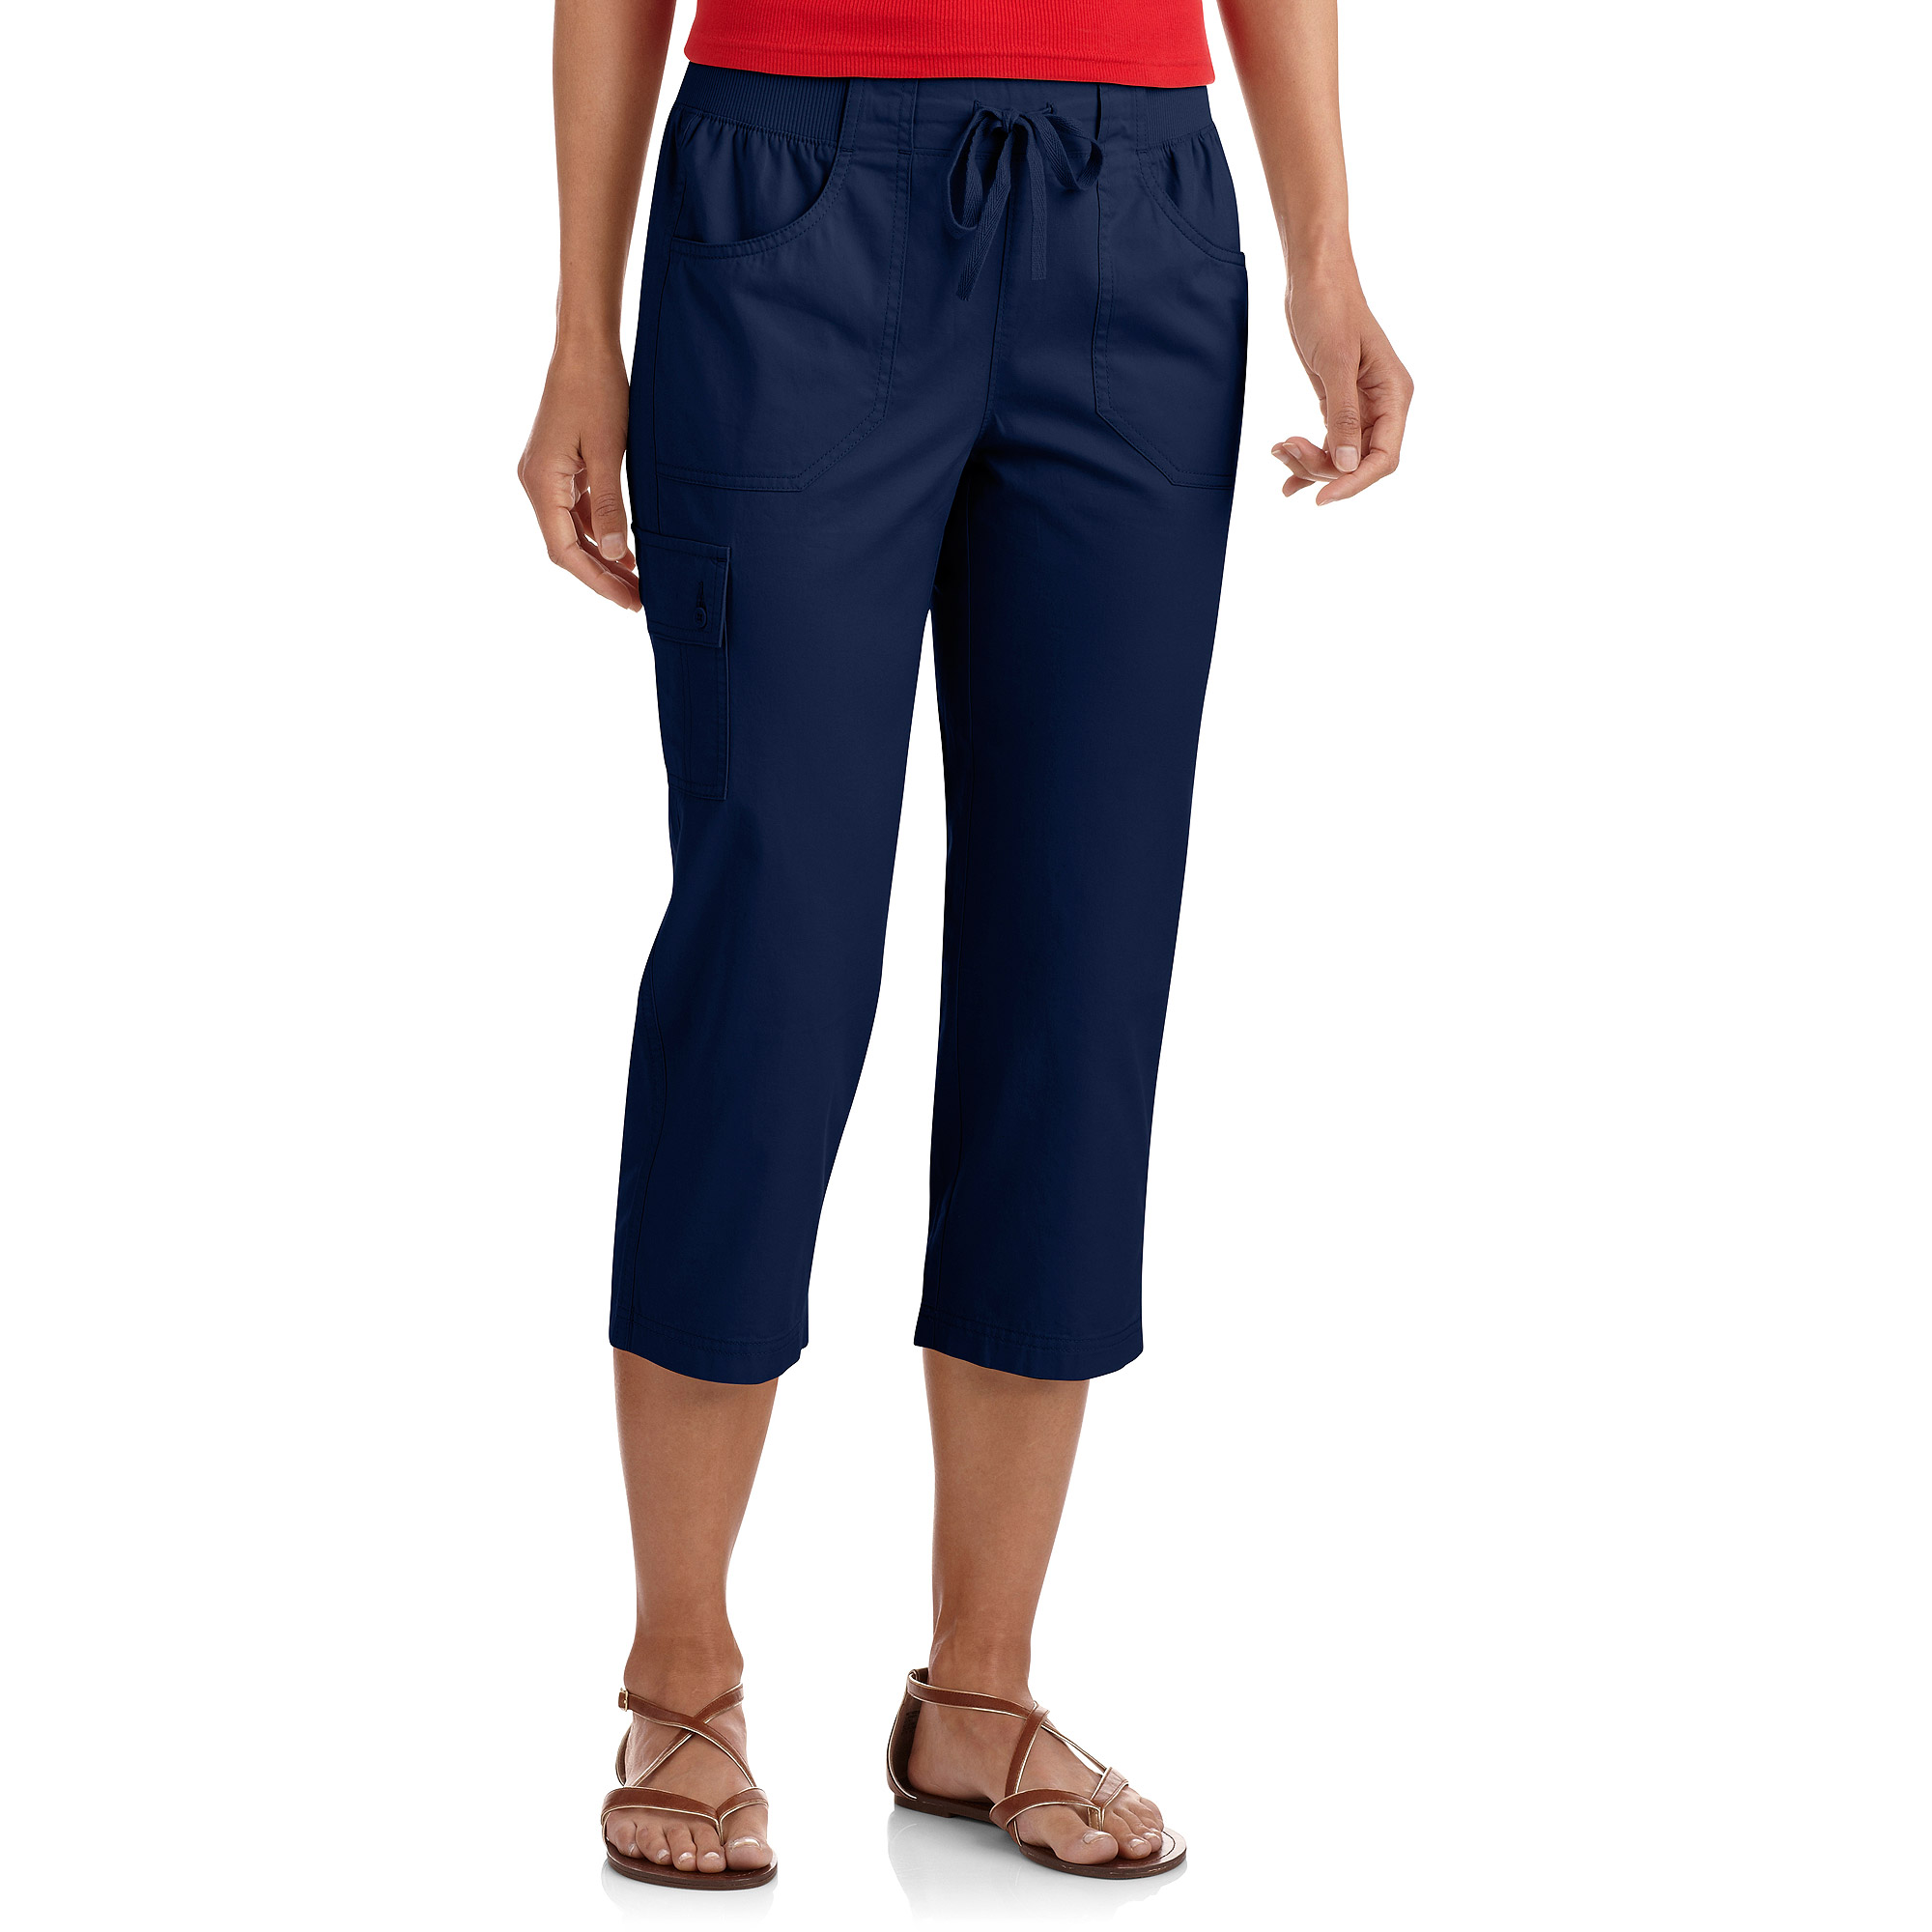 White Stag Women's Cotton Twill Capris